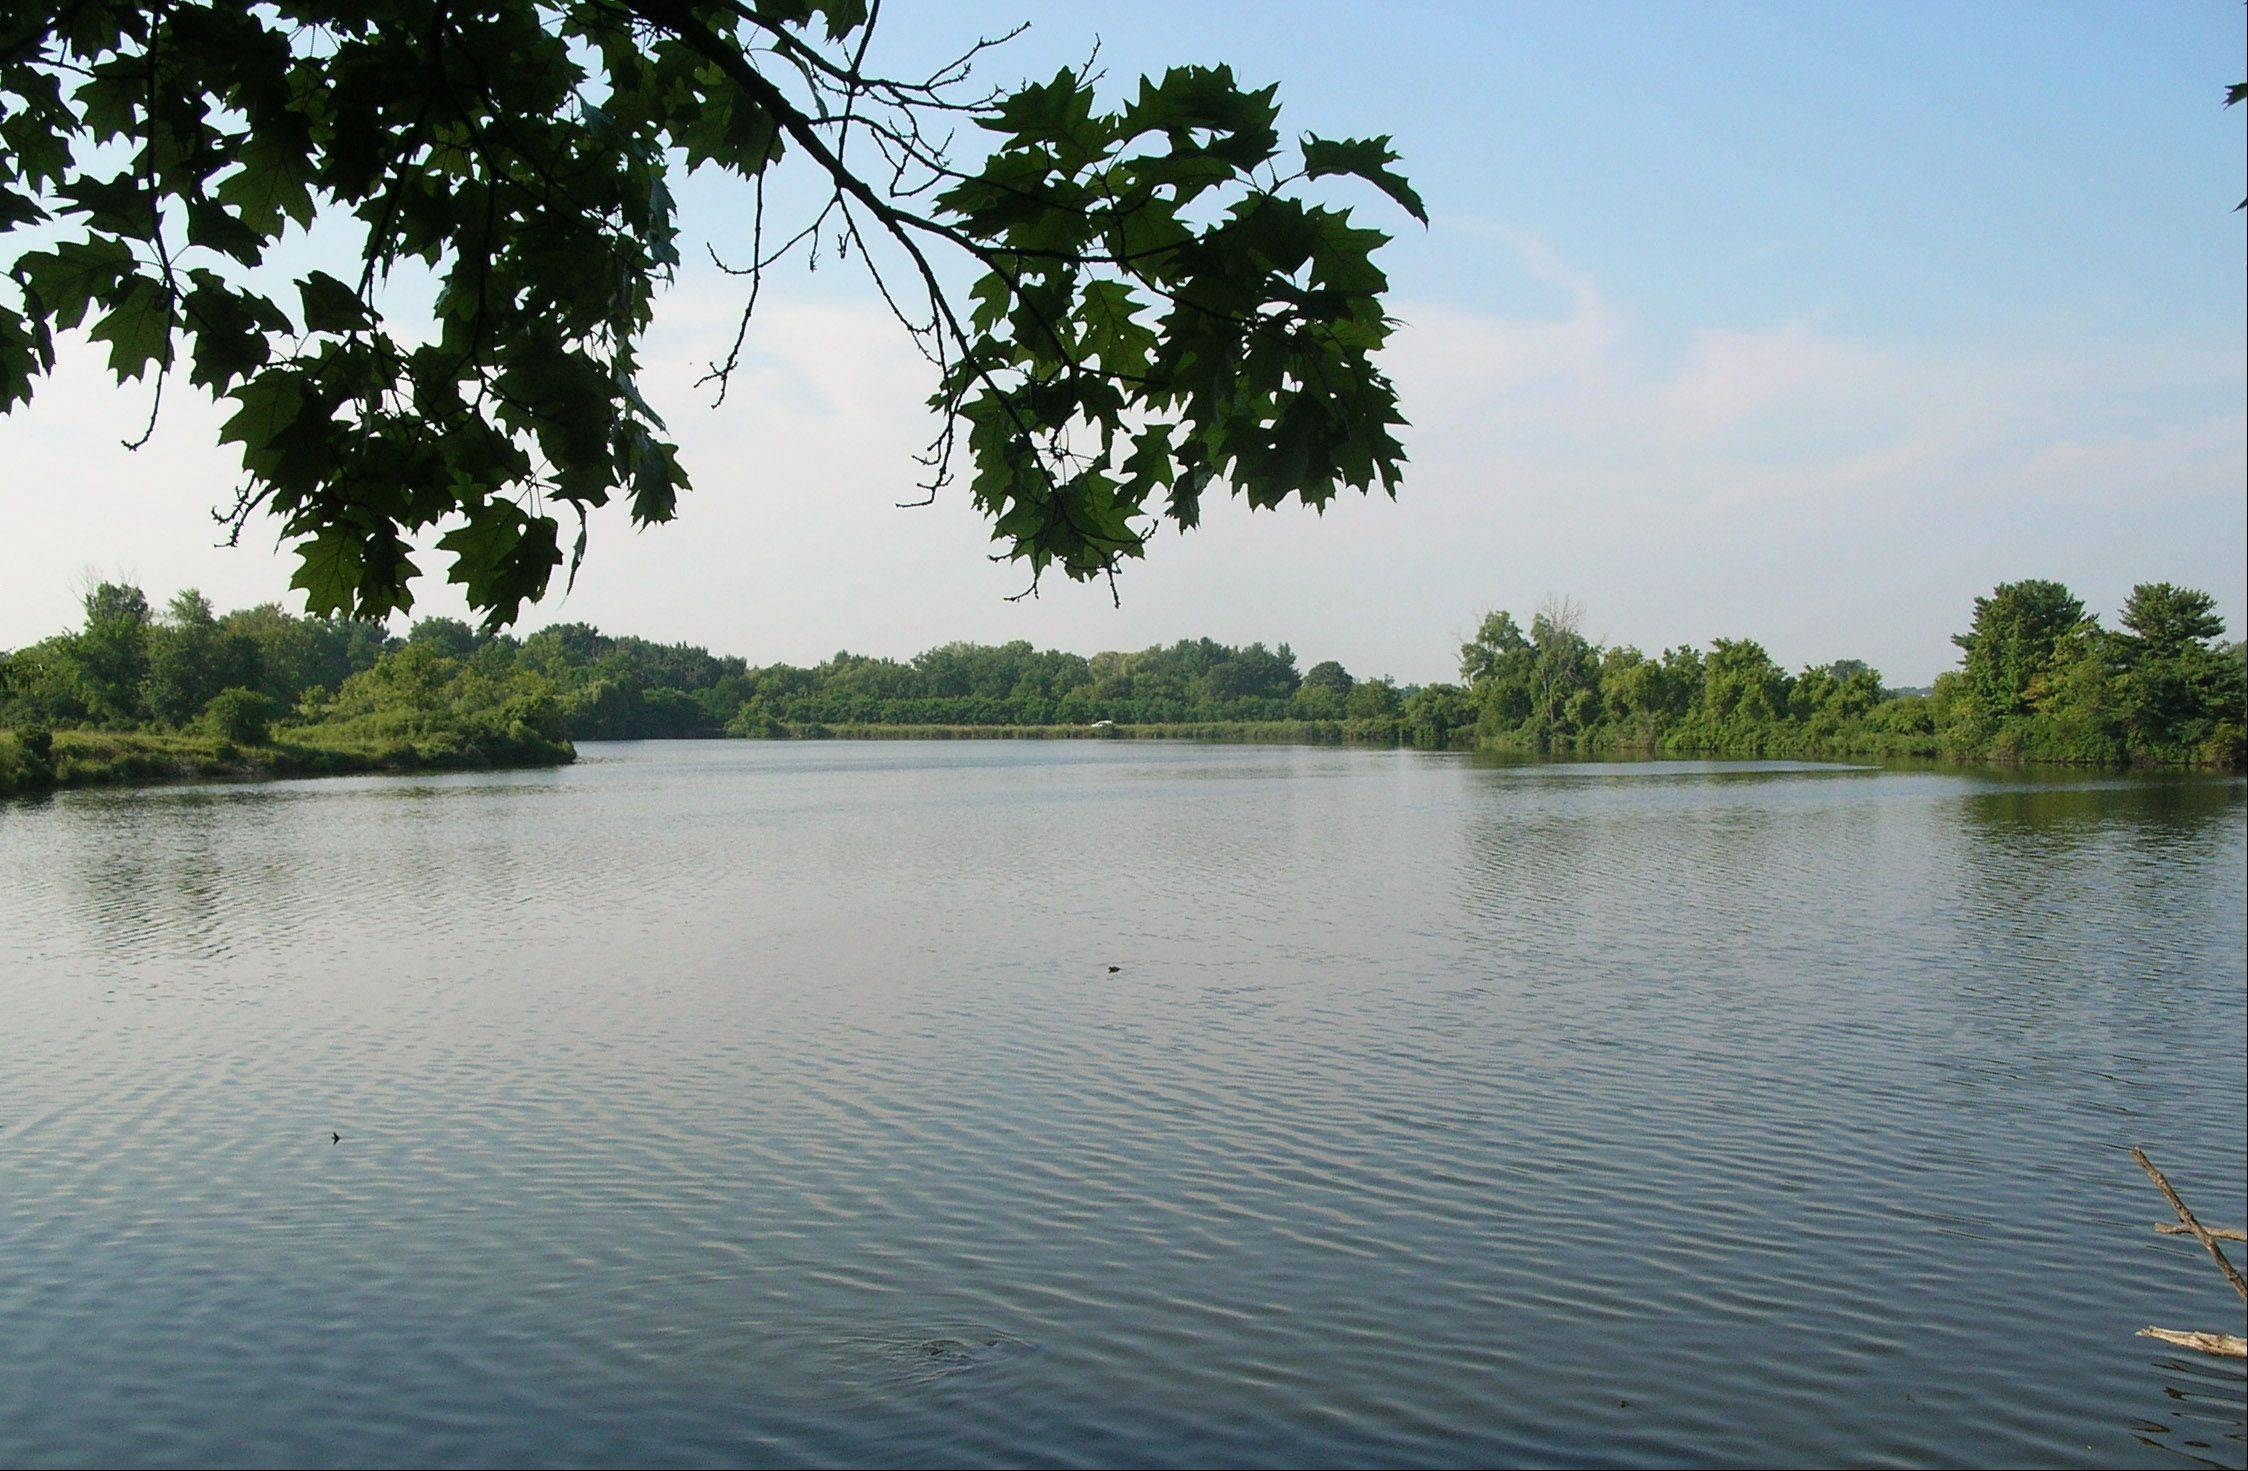 The Lake County Forest Preserve District is moving forward with plans to drain Rasmussen Lake in the Ethel�s Woods Forest Preserve near Antioch and open the area to public access.